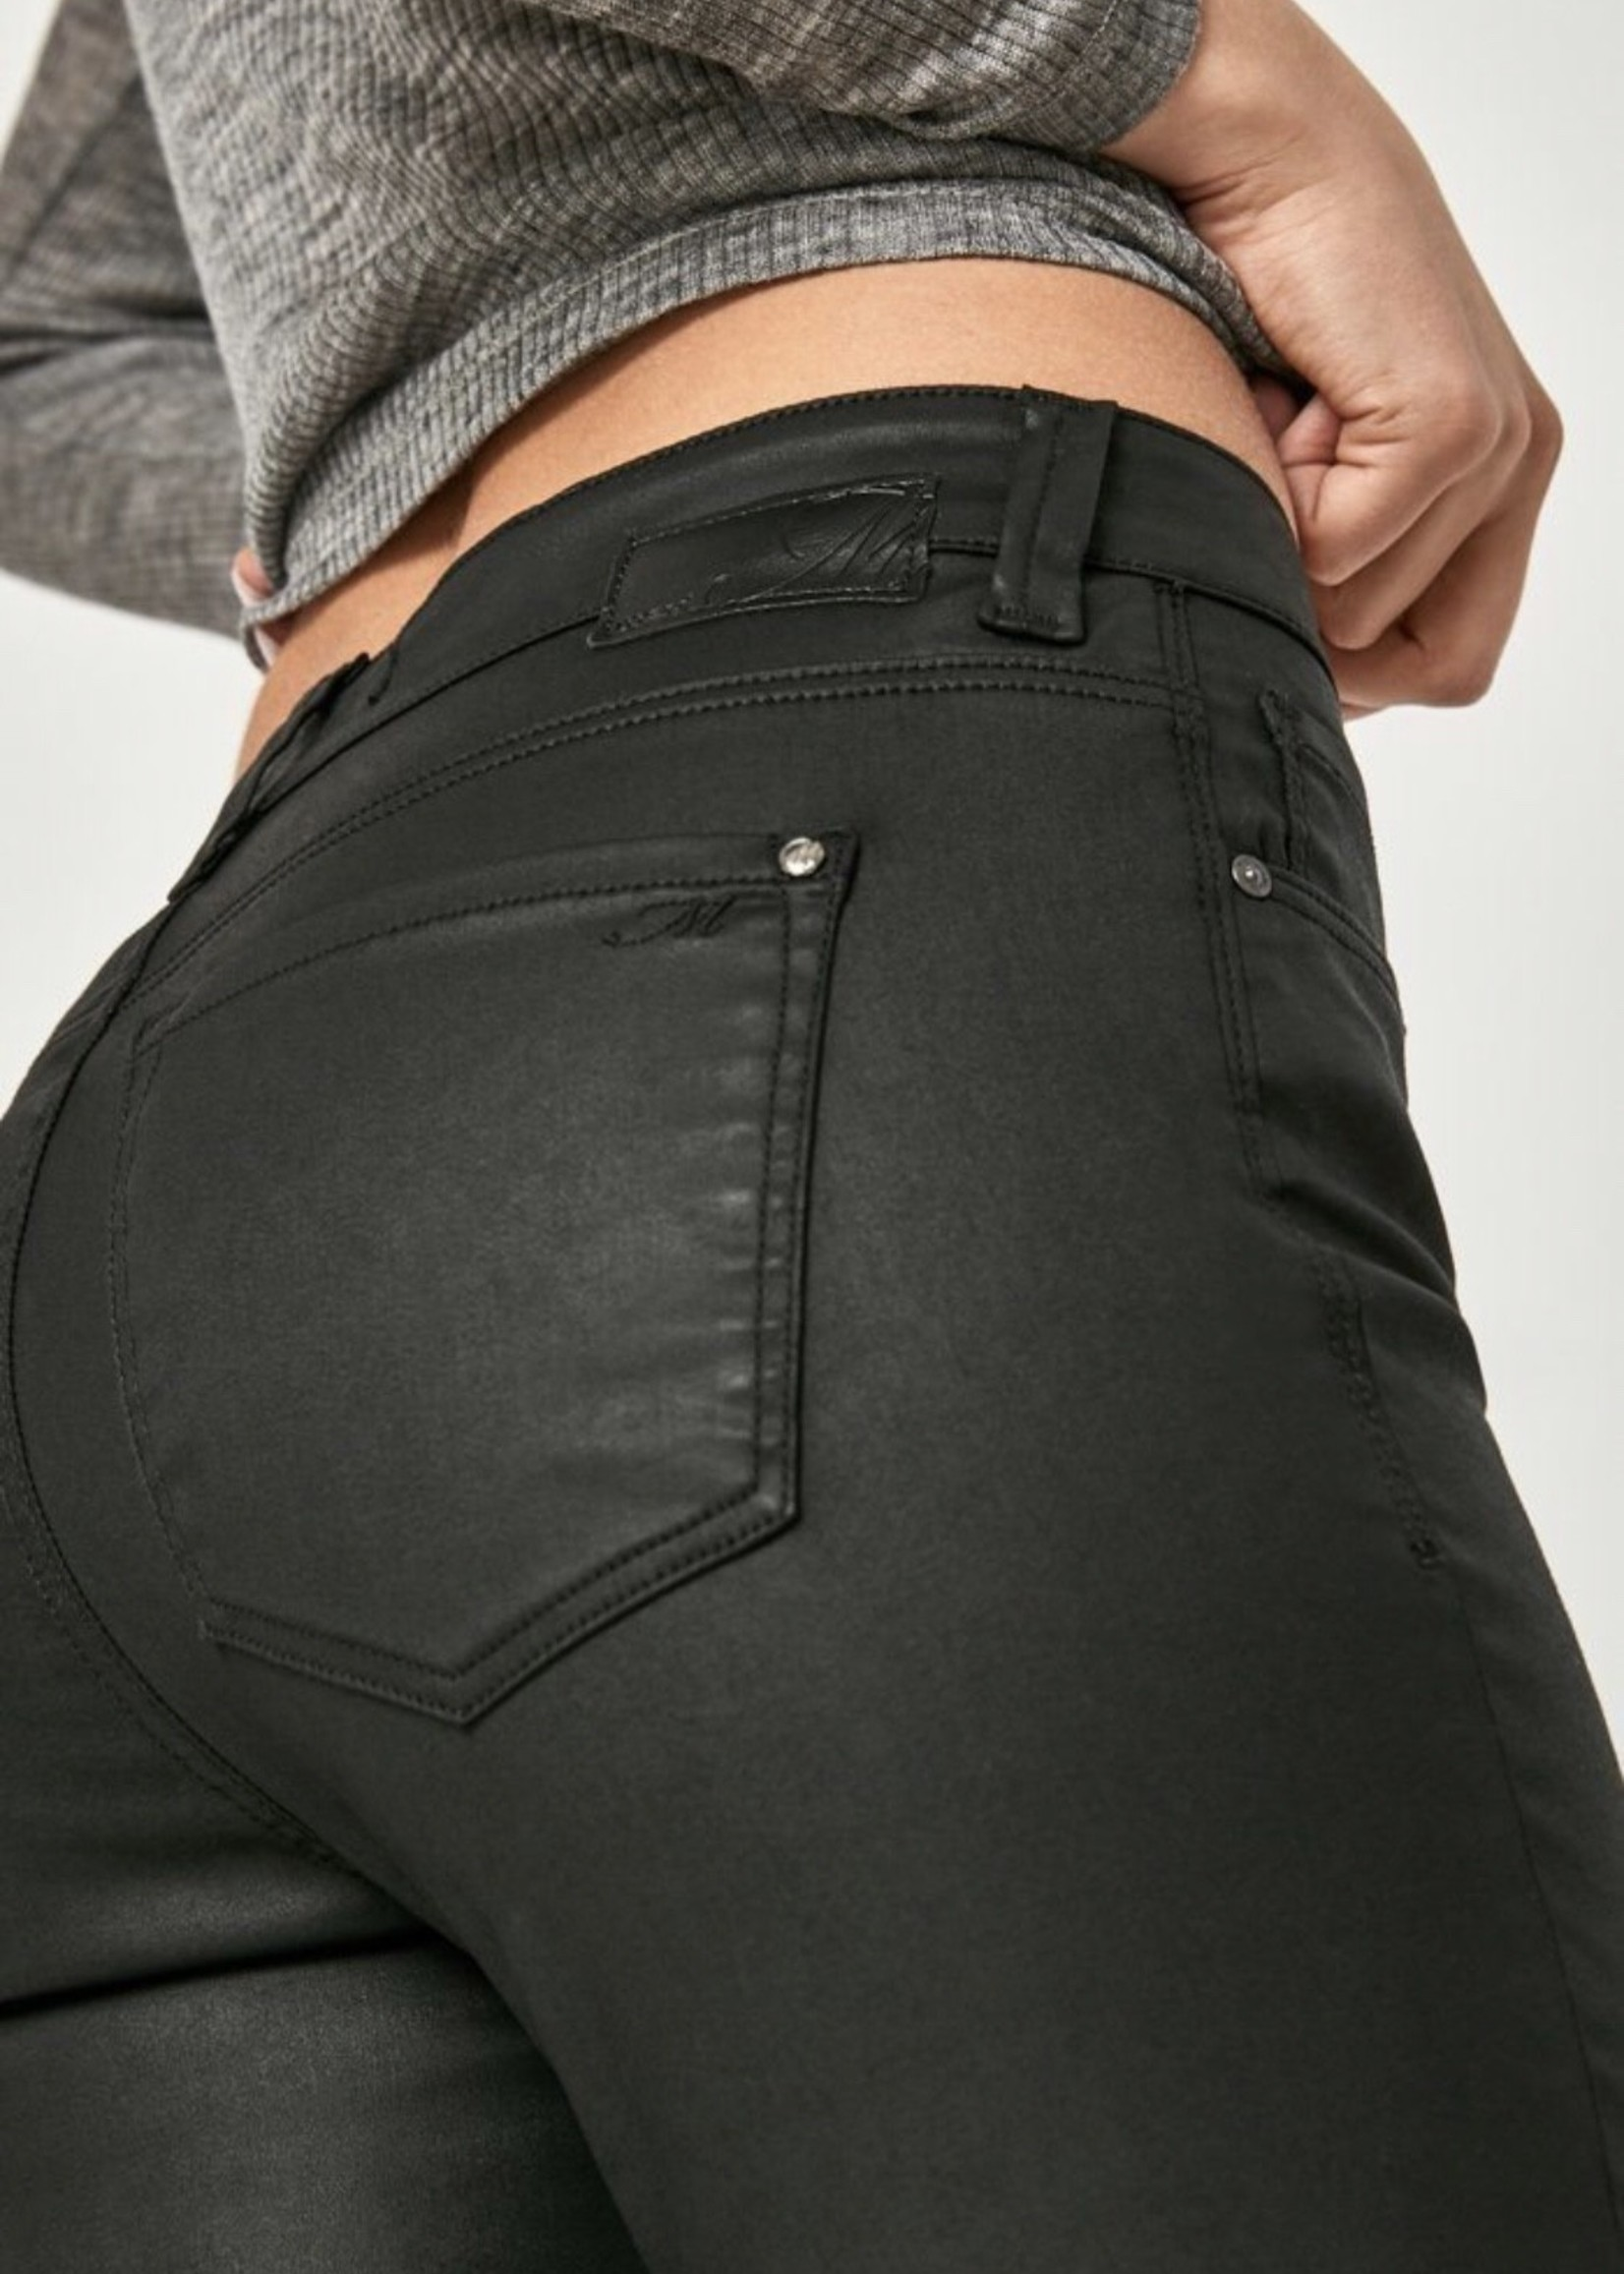 MAVI Jeans Tess Jeather Jegging